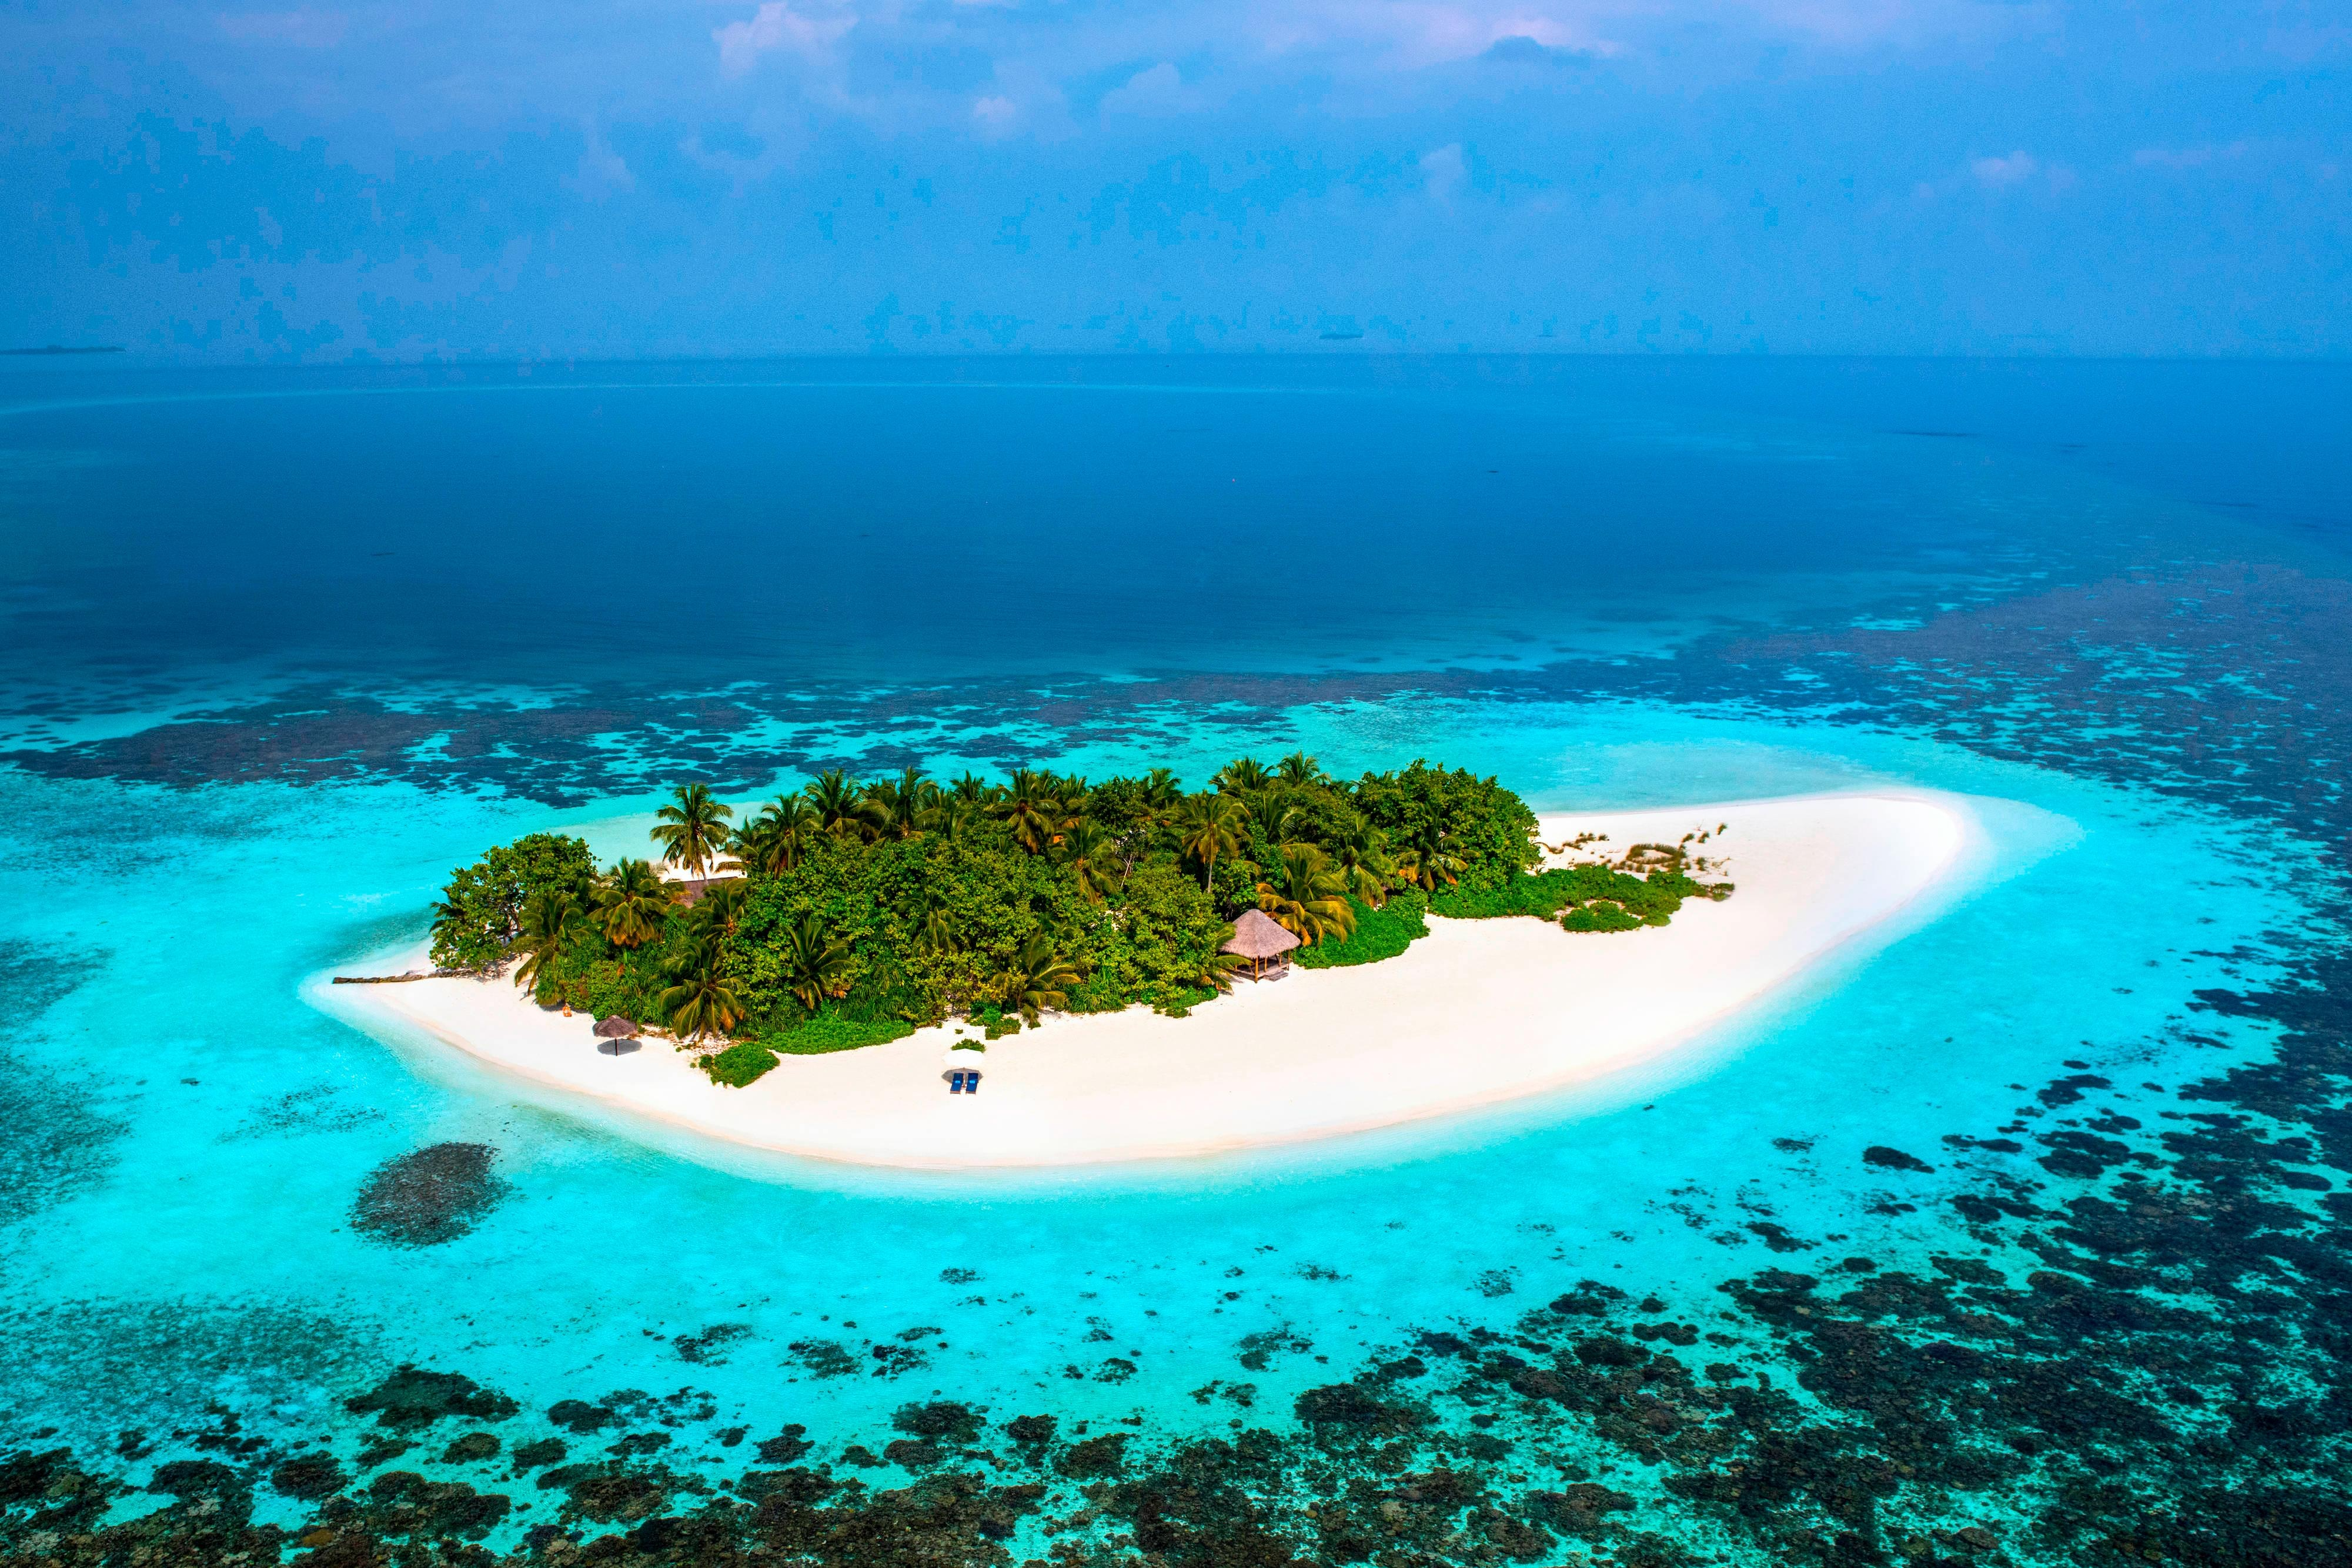 Gaathafushi W's Private Island